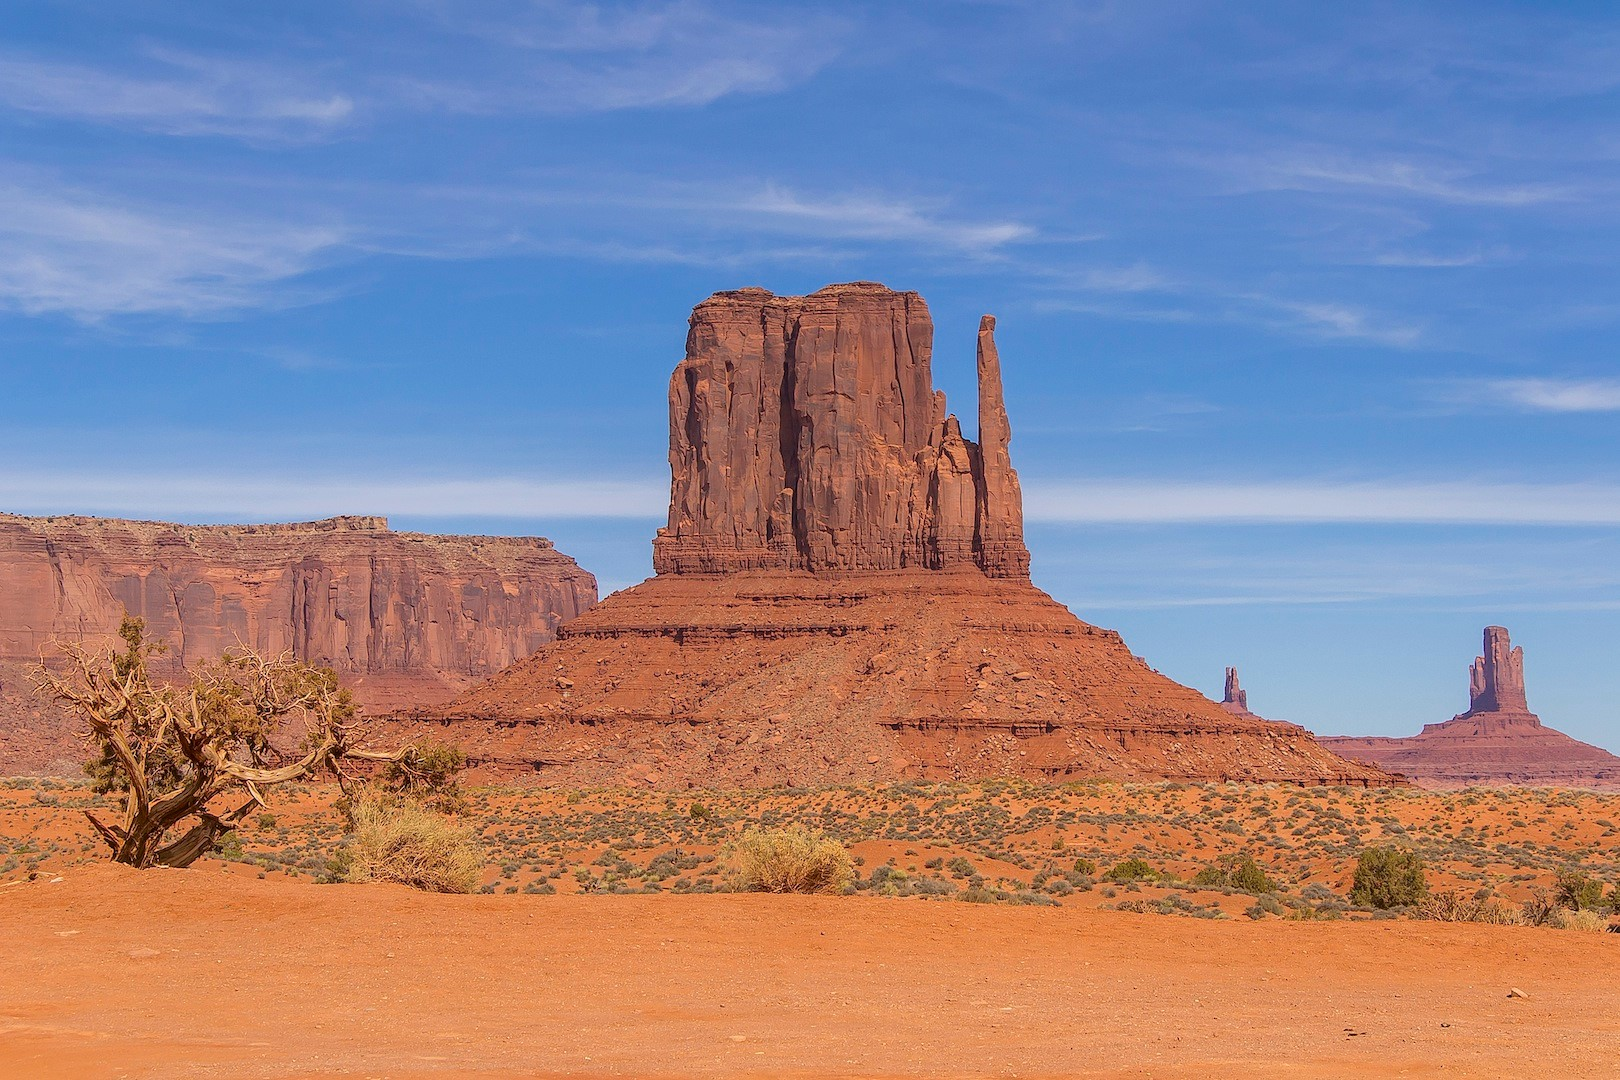 Le parc mythique de Monument Valley